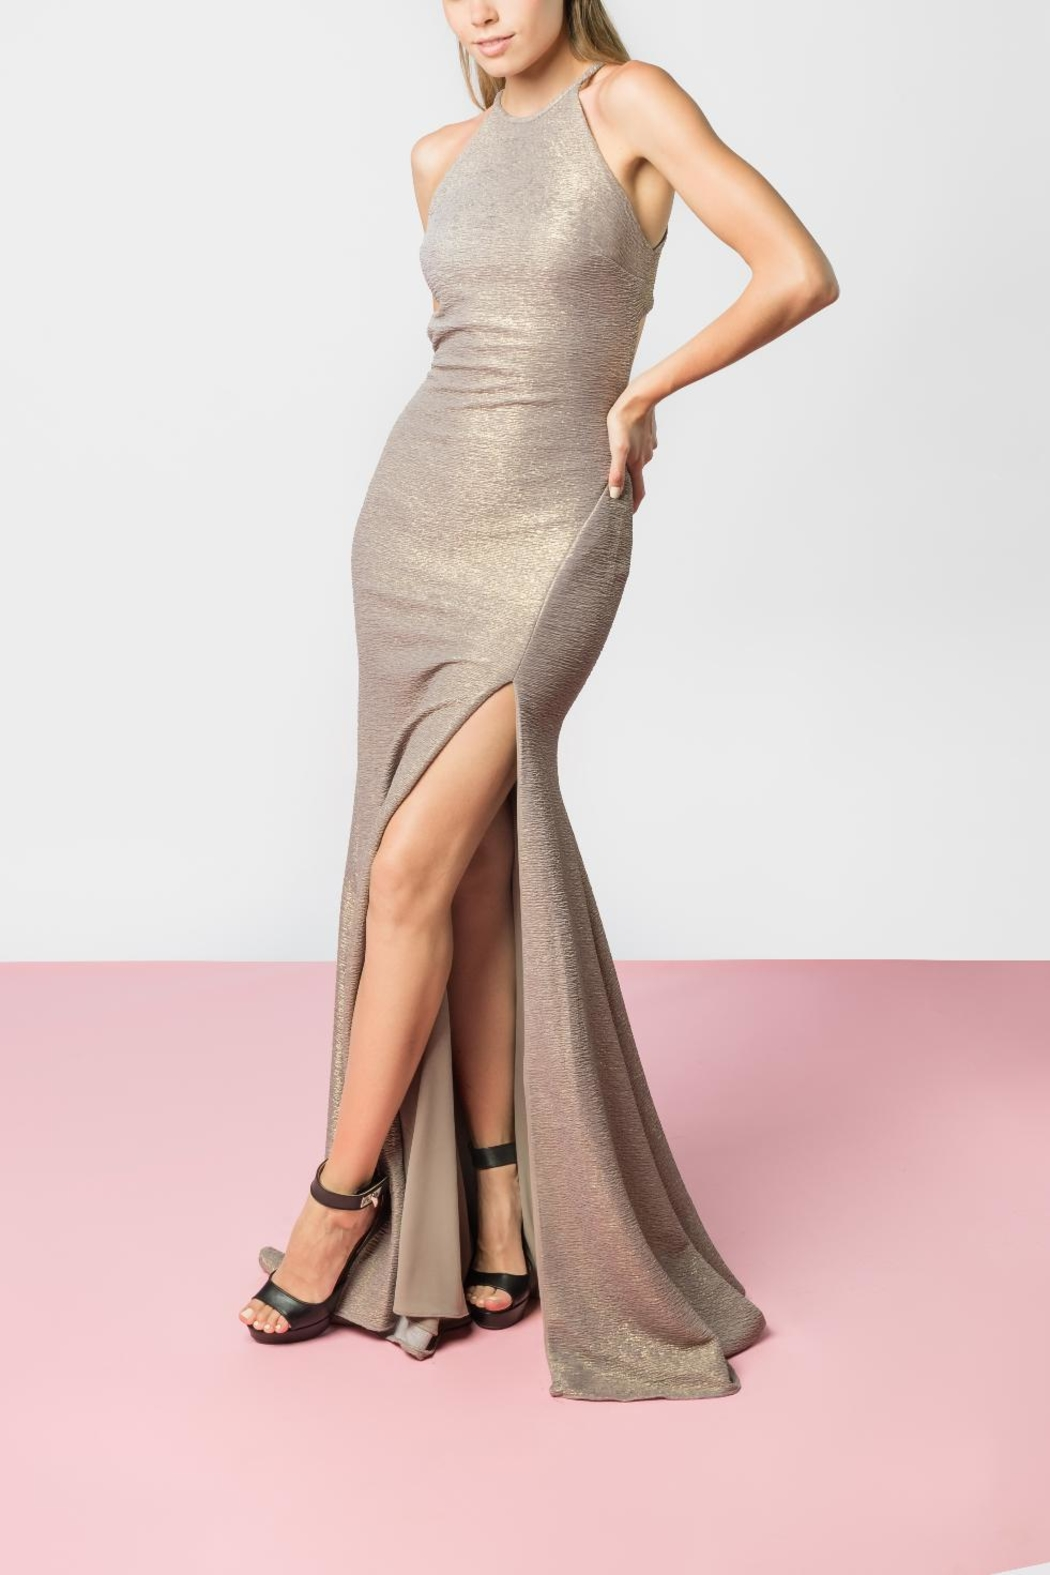 Jovani Taupe Gold Gown from Monterrey by Mona Mour — Shoptiques